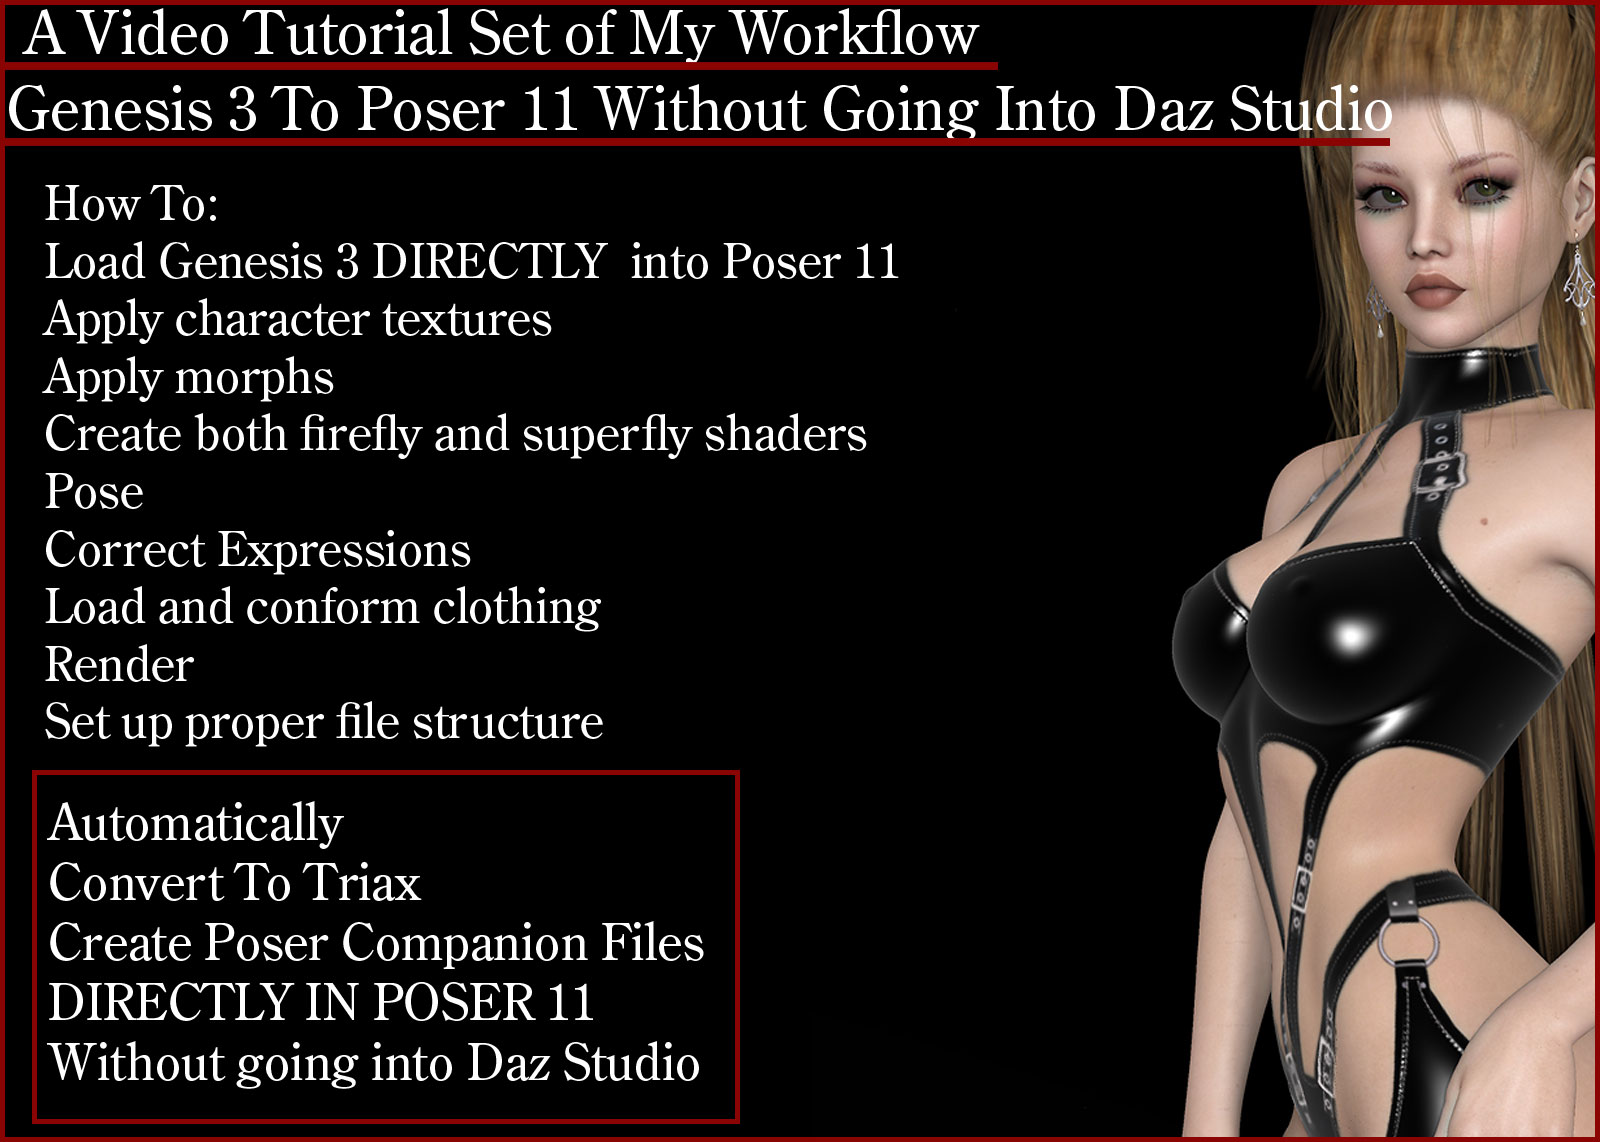 Genesis 3 to Poser 11 without going into Daz Studio